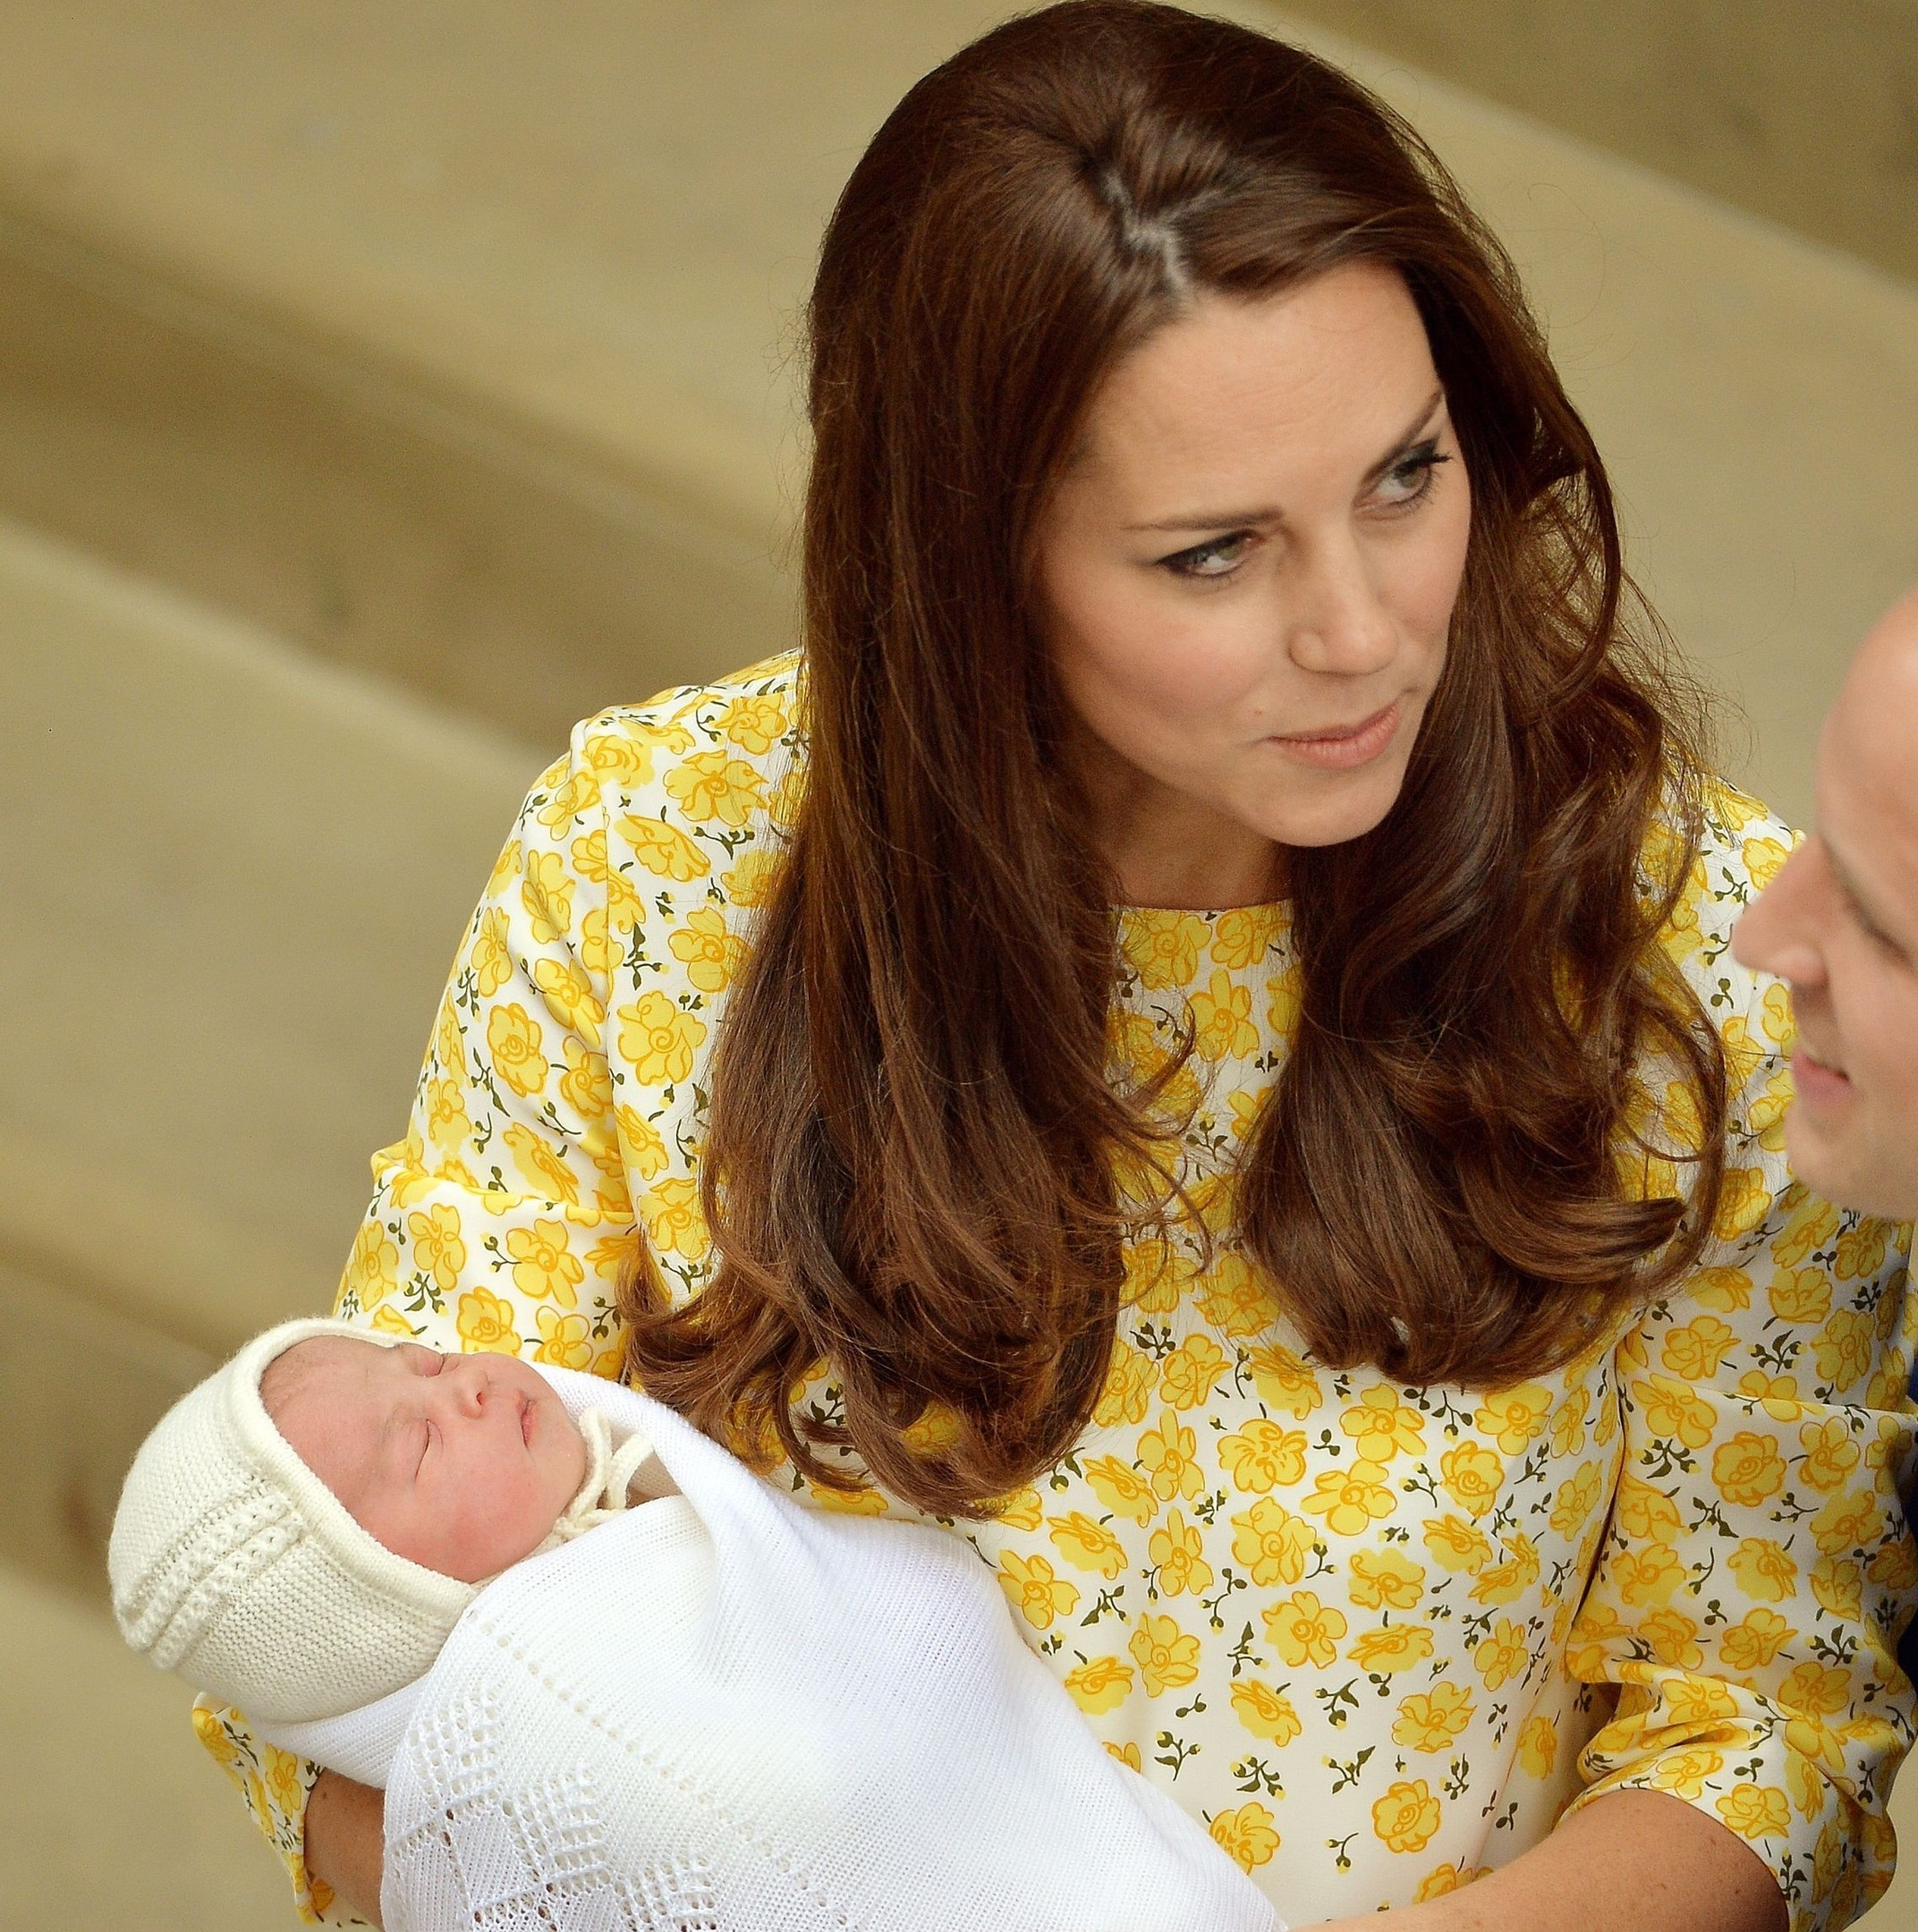 The Princess of Cambridge after leaving   the Lindo Wing of St Mary's Hospital in London.